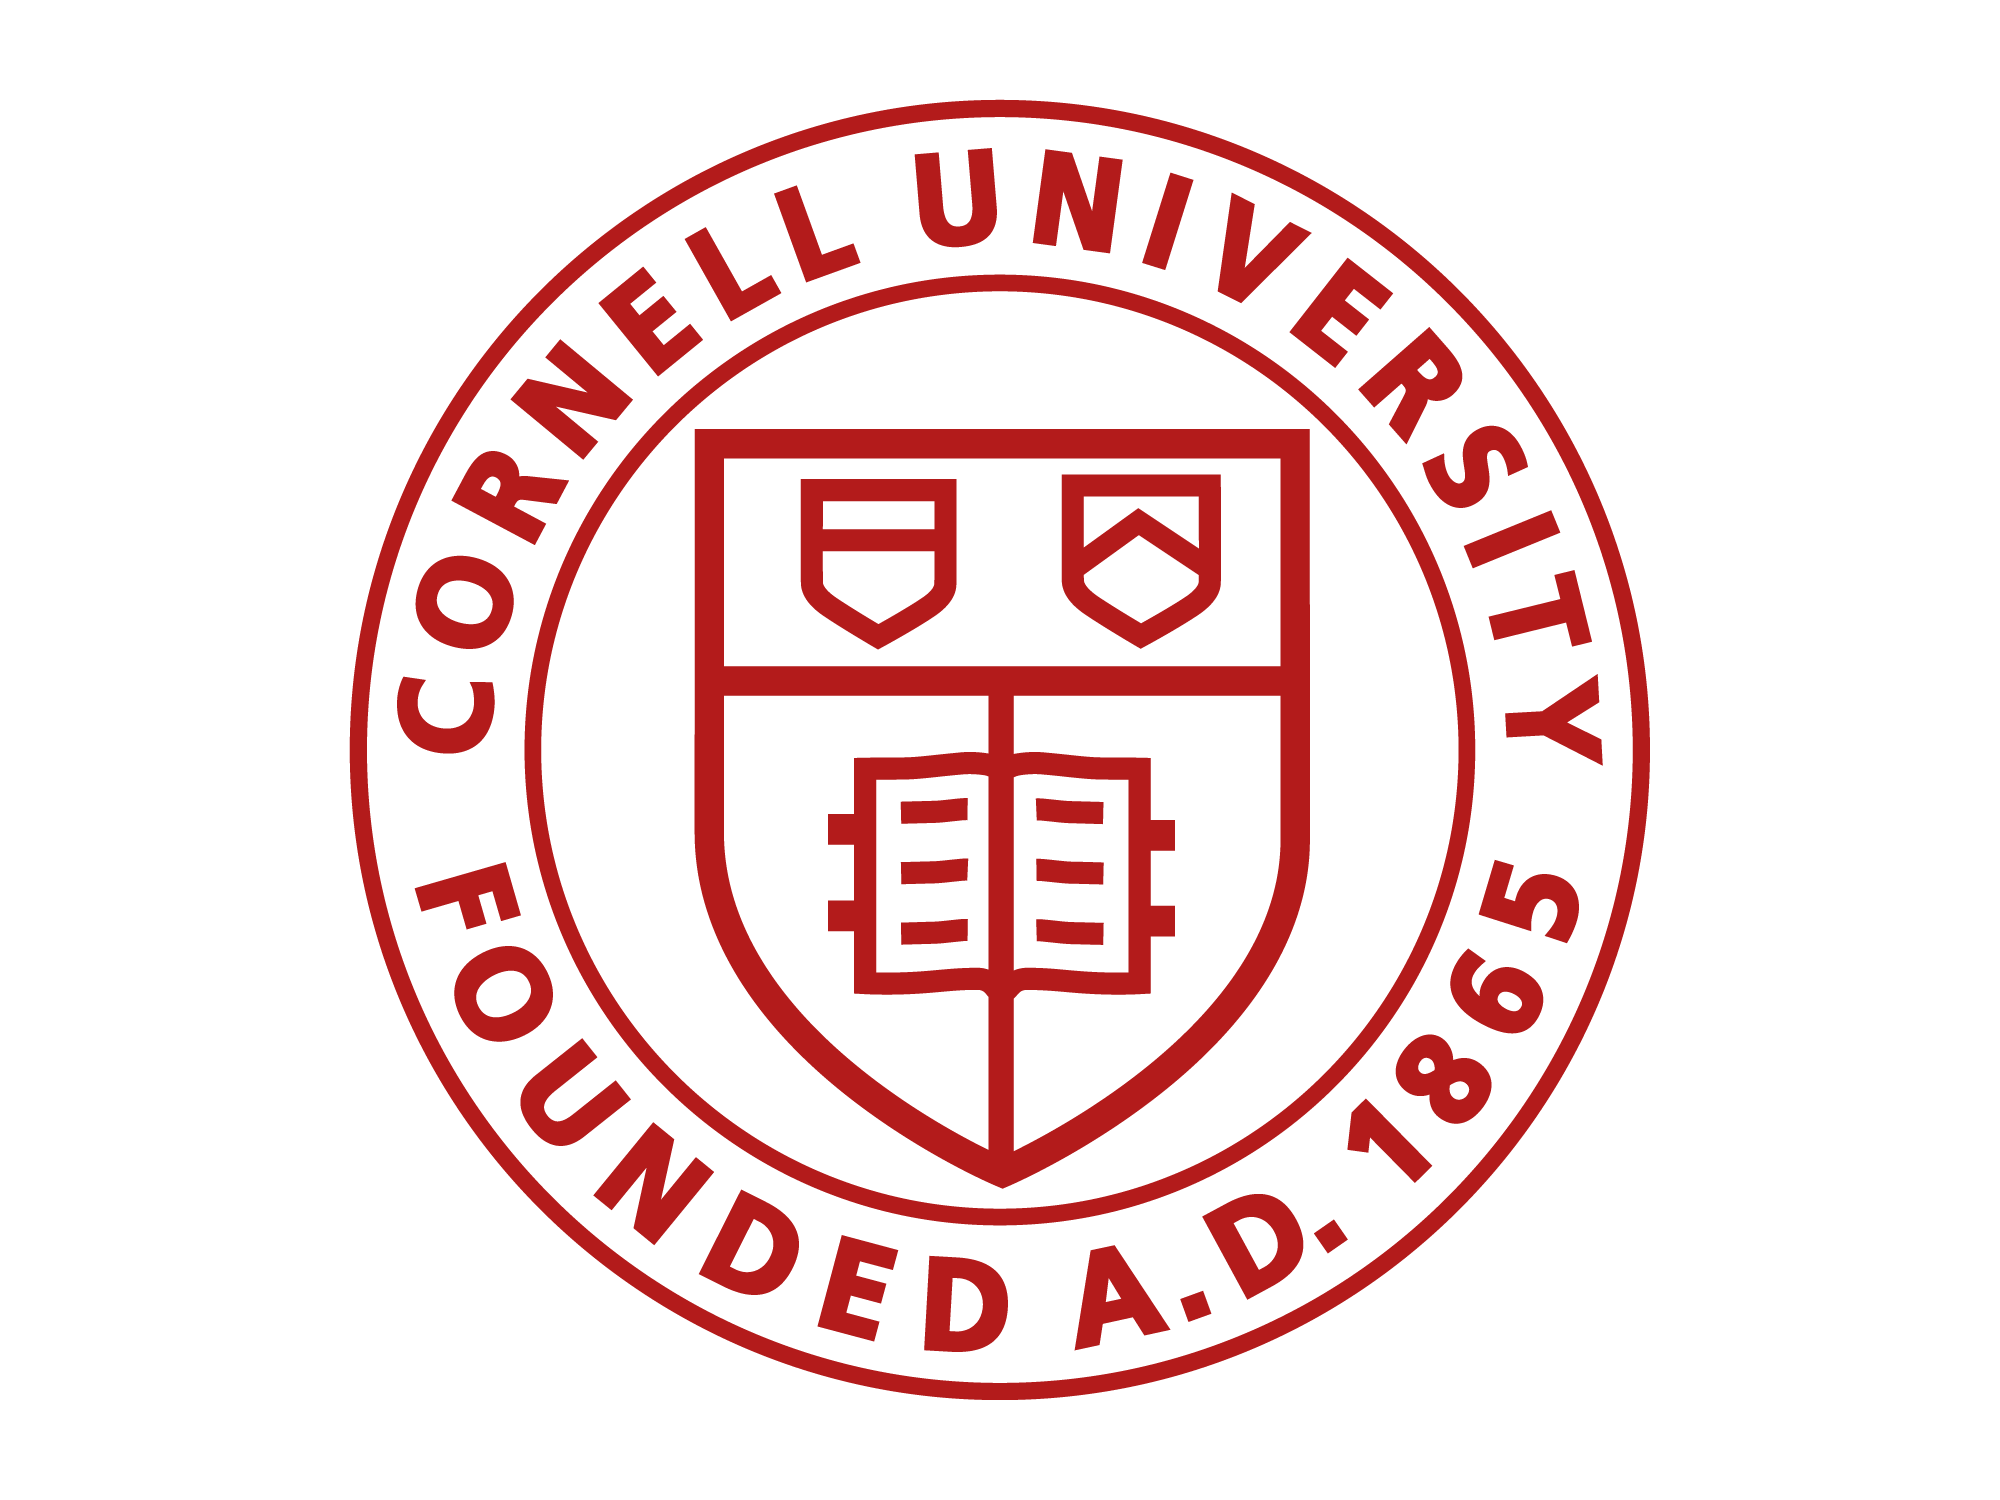 Cornell University takes precautions ahead of reopening - WENY News